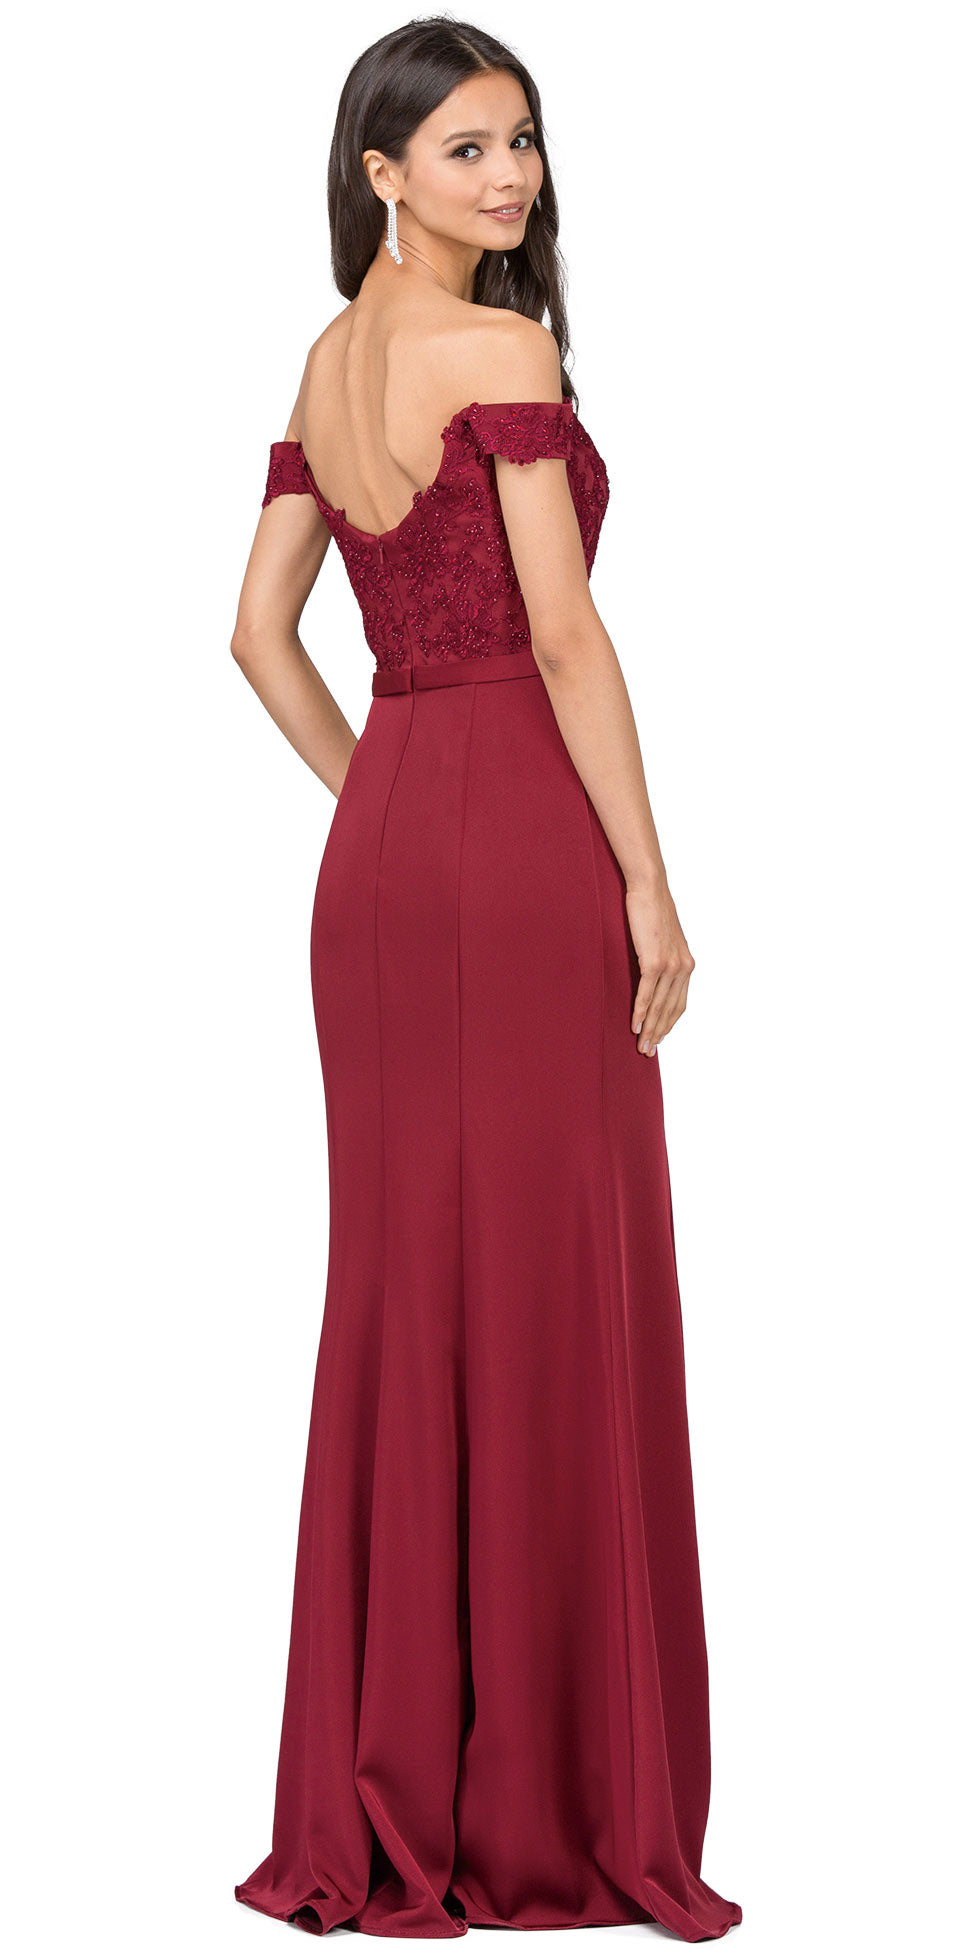 Image of Off-the-shoulder Lace Accent Top Long Prom Dress back in burgundy